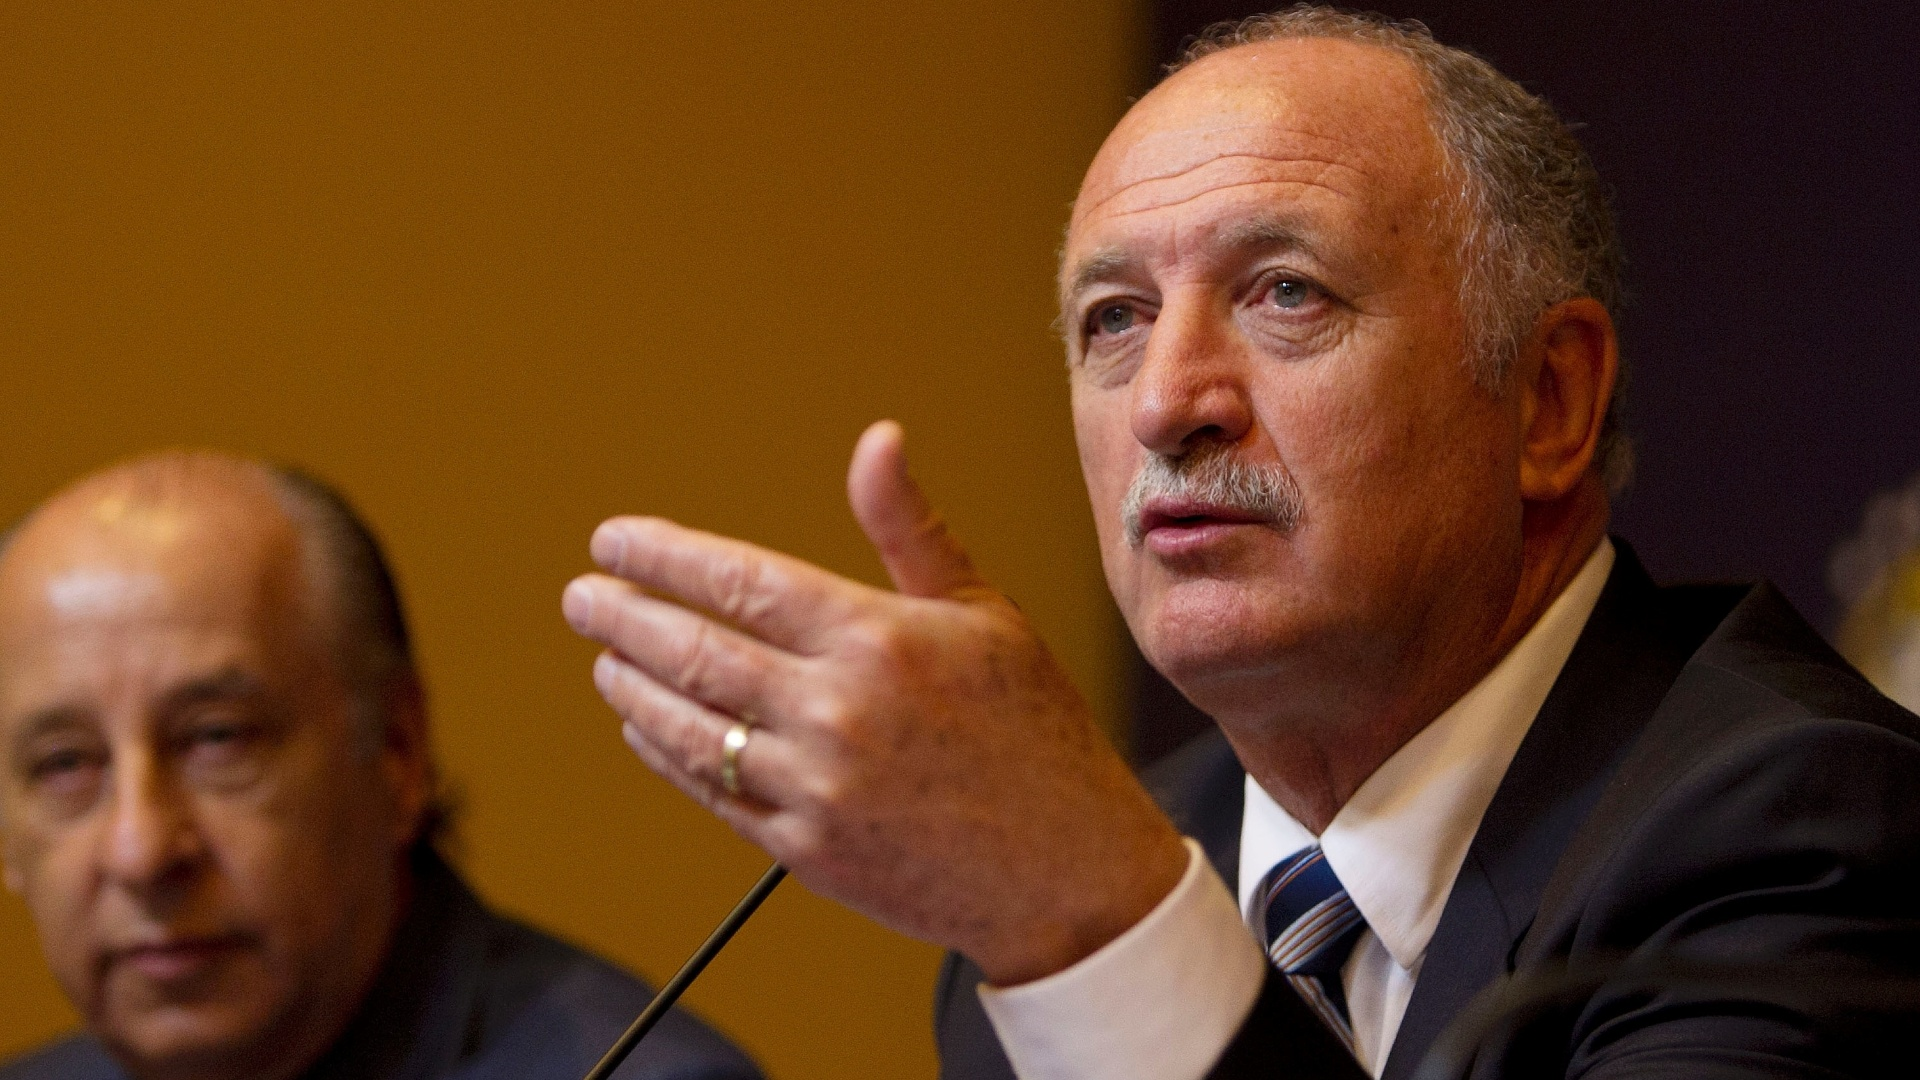 29.nov.2012 - Novo tcnico da seleo brasileira, Luiz Felipe Scolari discursa ao lado de Marco Polo Del Nero durante anncio no Rio de Janeiro